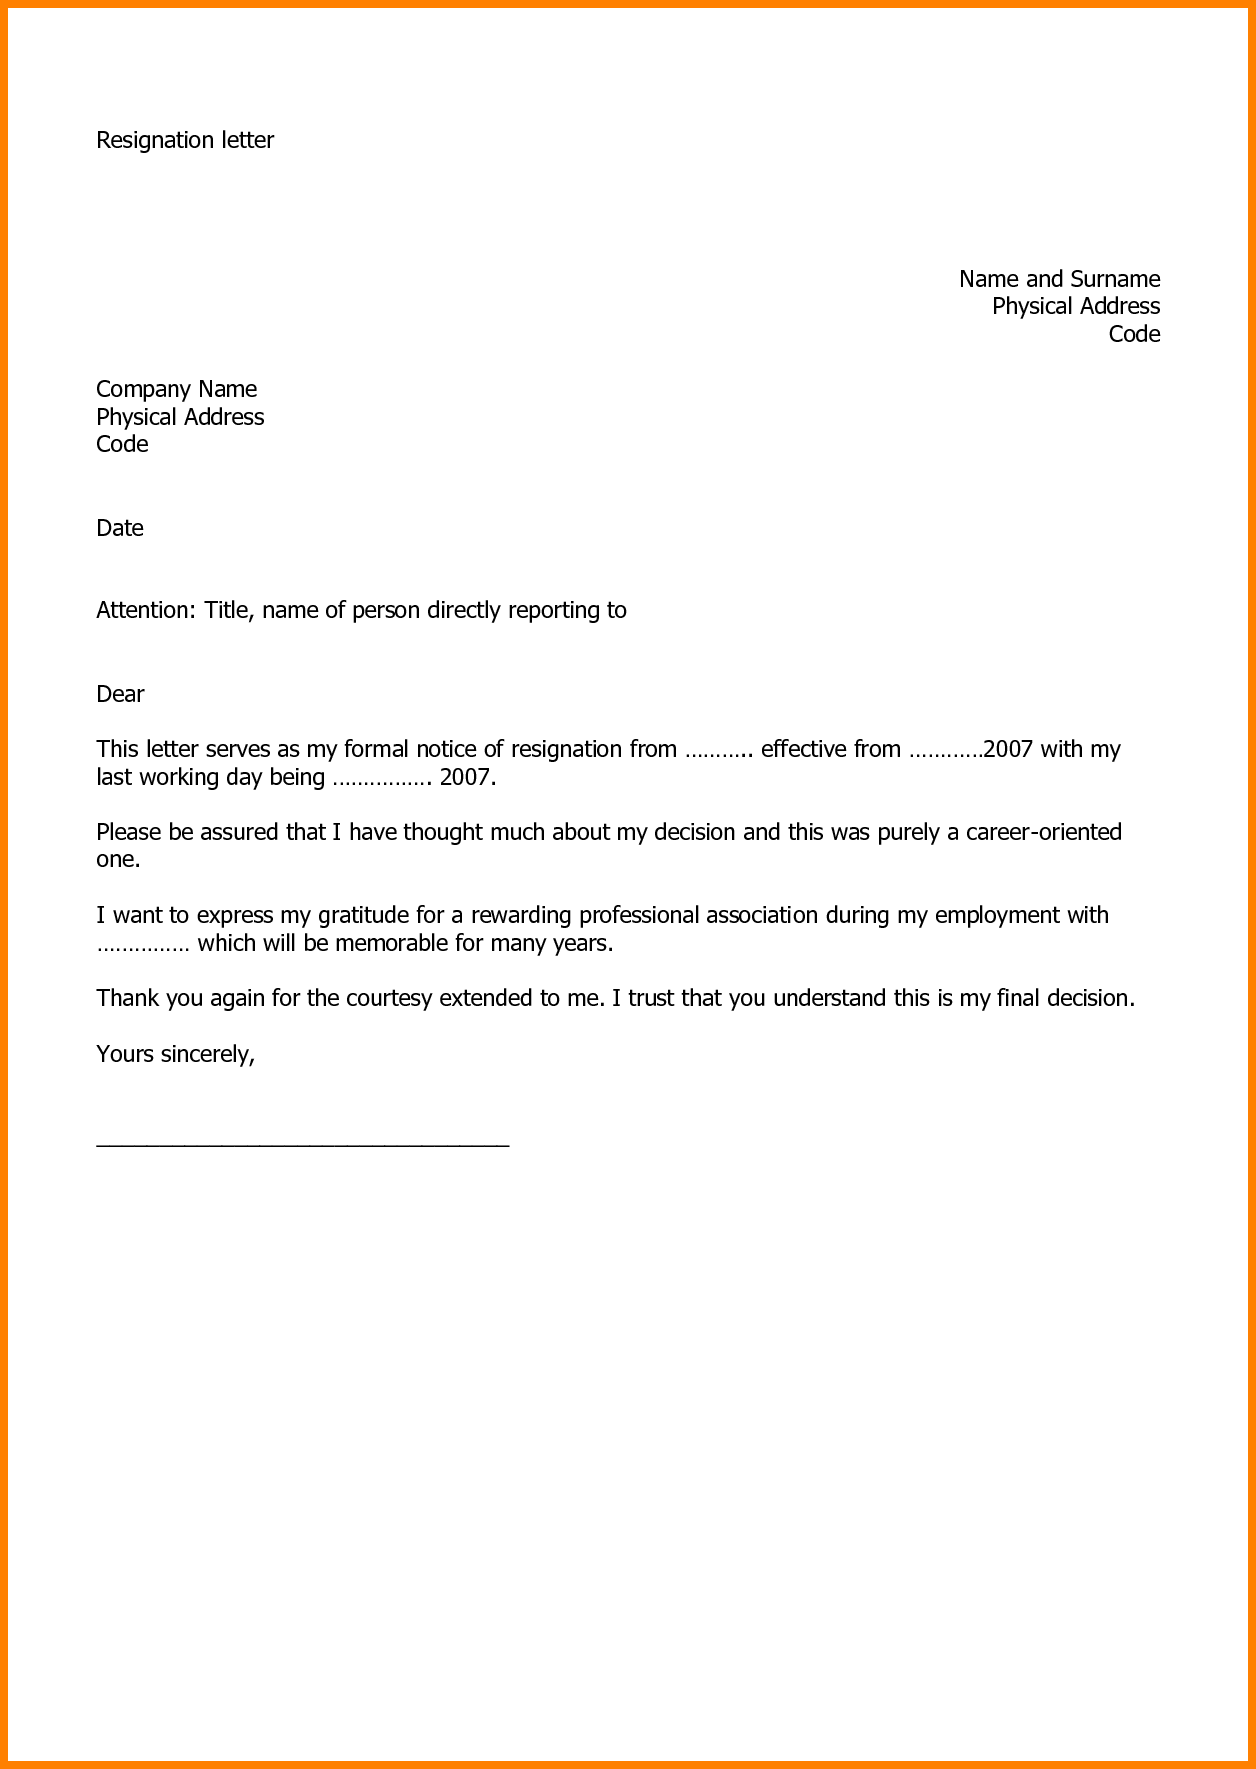 Sample job resignation letter format juvecenitdelacabrera sample altavistaventures Images